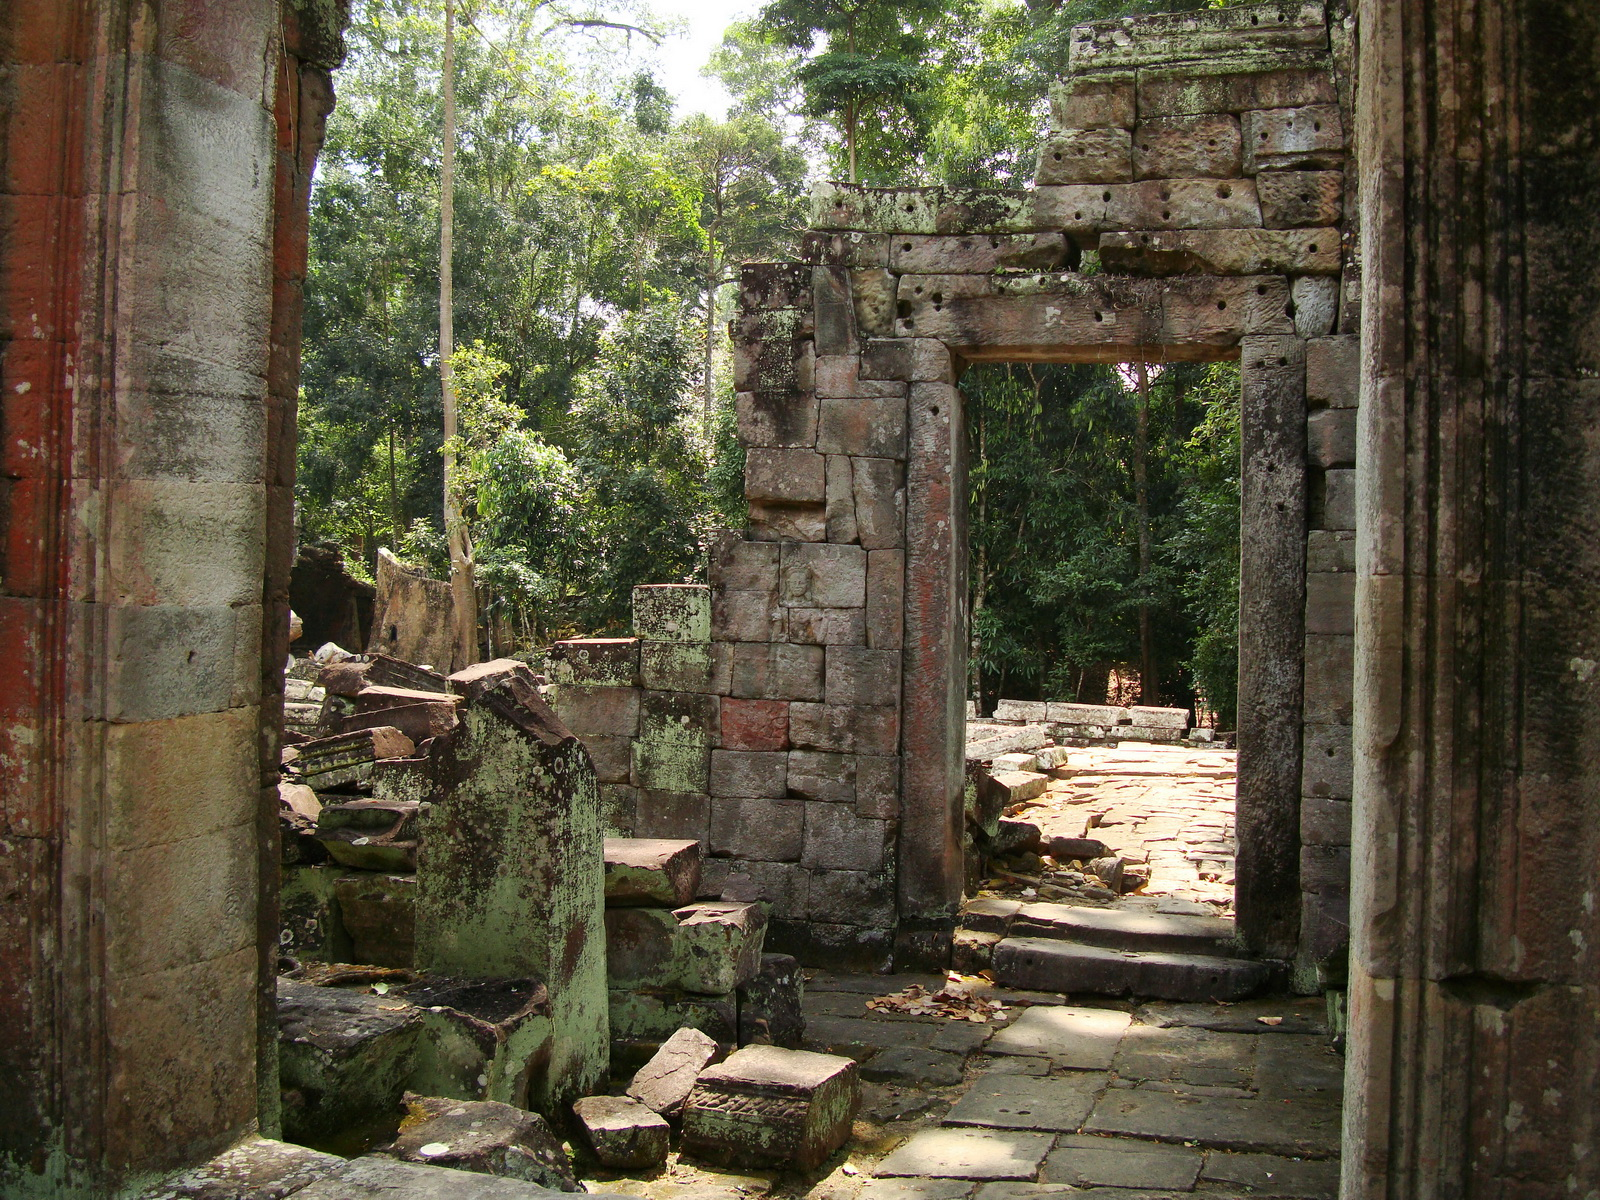 Preah Khan Temple 12th century Khmer Style passageways 24